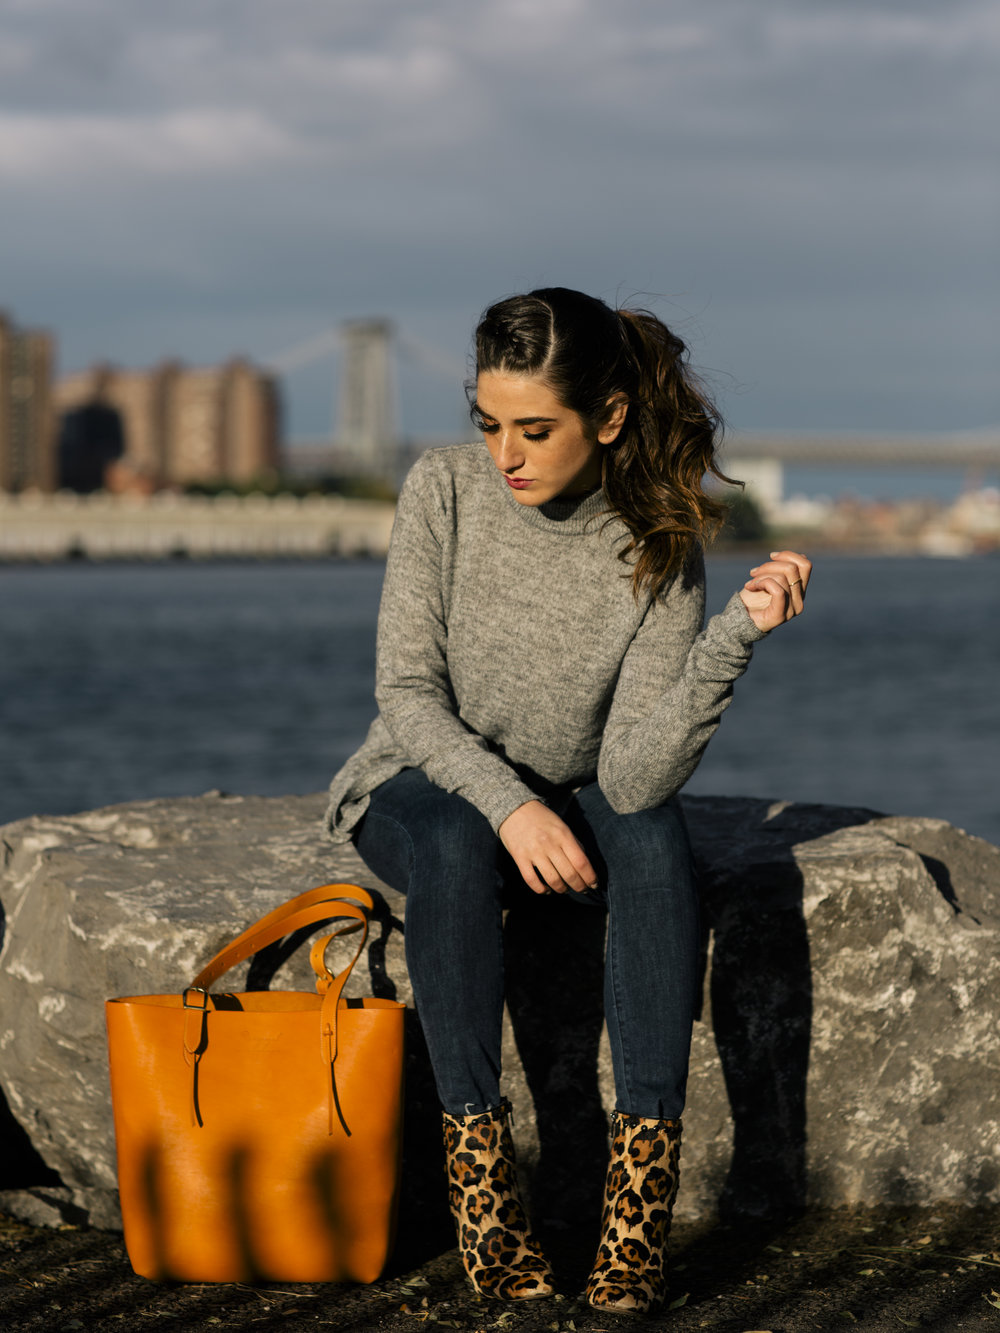 Long Grey Sweater Leopard Booties Louboutins & Love Fashion Blog Esther Santer NYC Street Style Blogger Outfit OOTD Trendy Hair Girl Women Leather Bag Jeans Denim Pretty Photoshoot Dumbo Brooklyn Shoes Fall Winter Inspo Wear Shop Beautiful Turtleneck.jpg